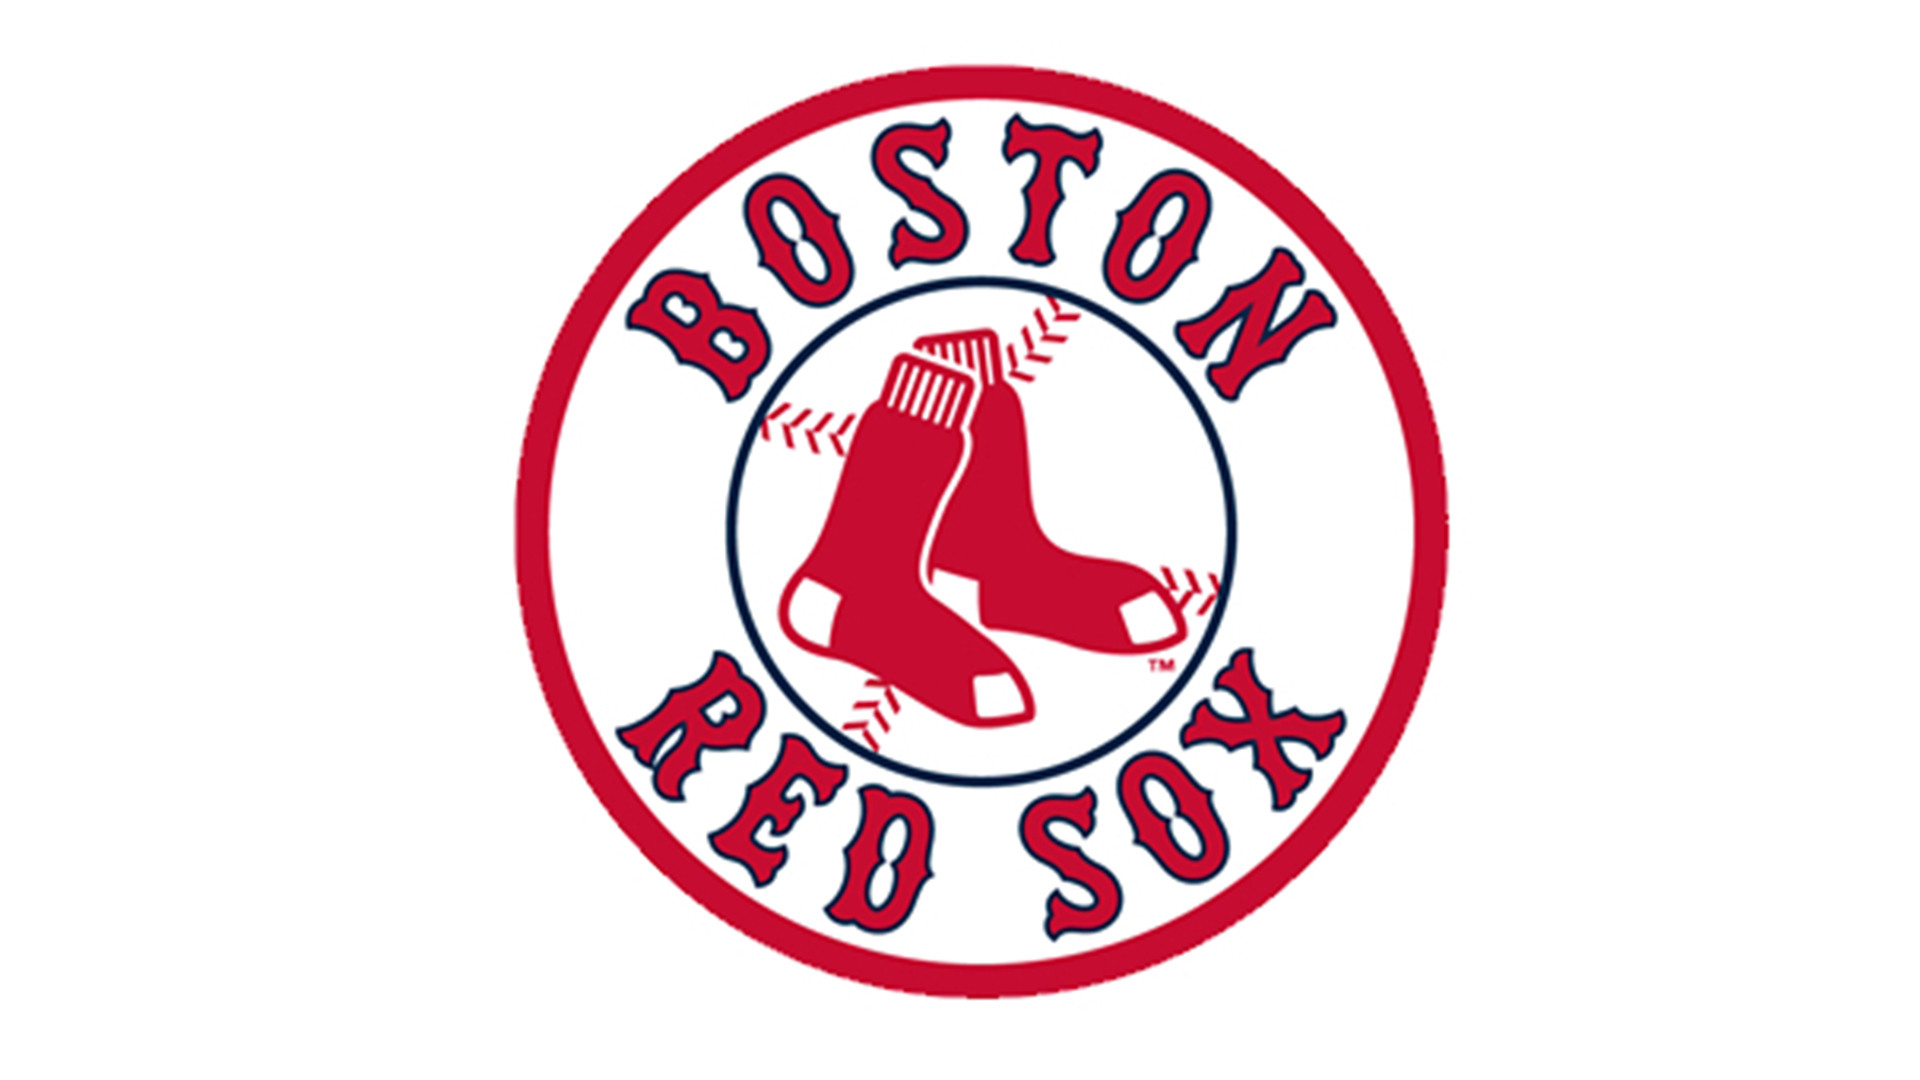 1920x1080 Boston Redsox Red Sox Logo Wallpaper #2542 - Resolution 1366x768 px | Red  Sox Wallpaper | Pinterest | Red socks